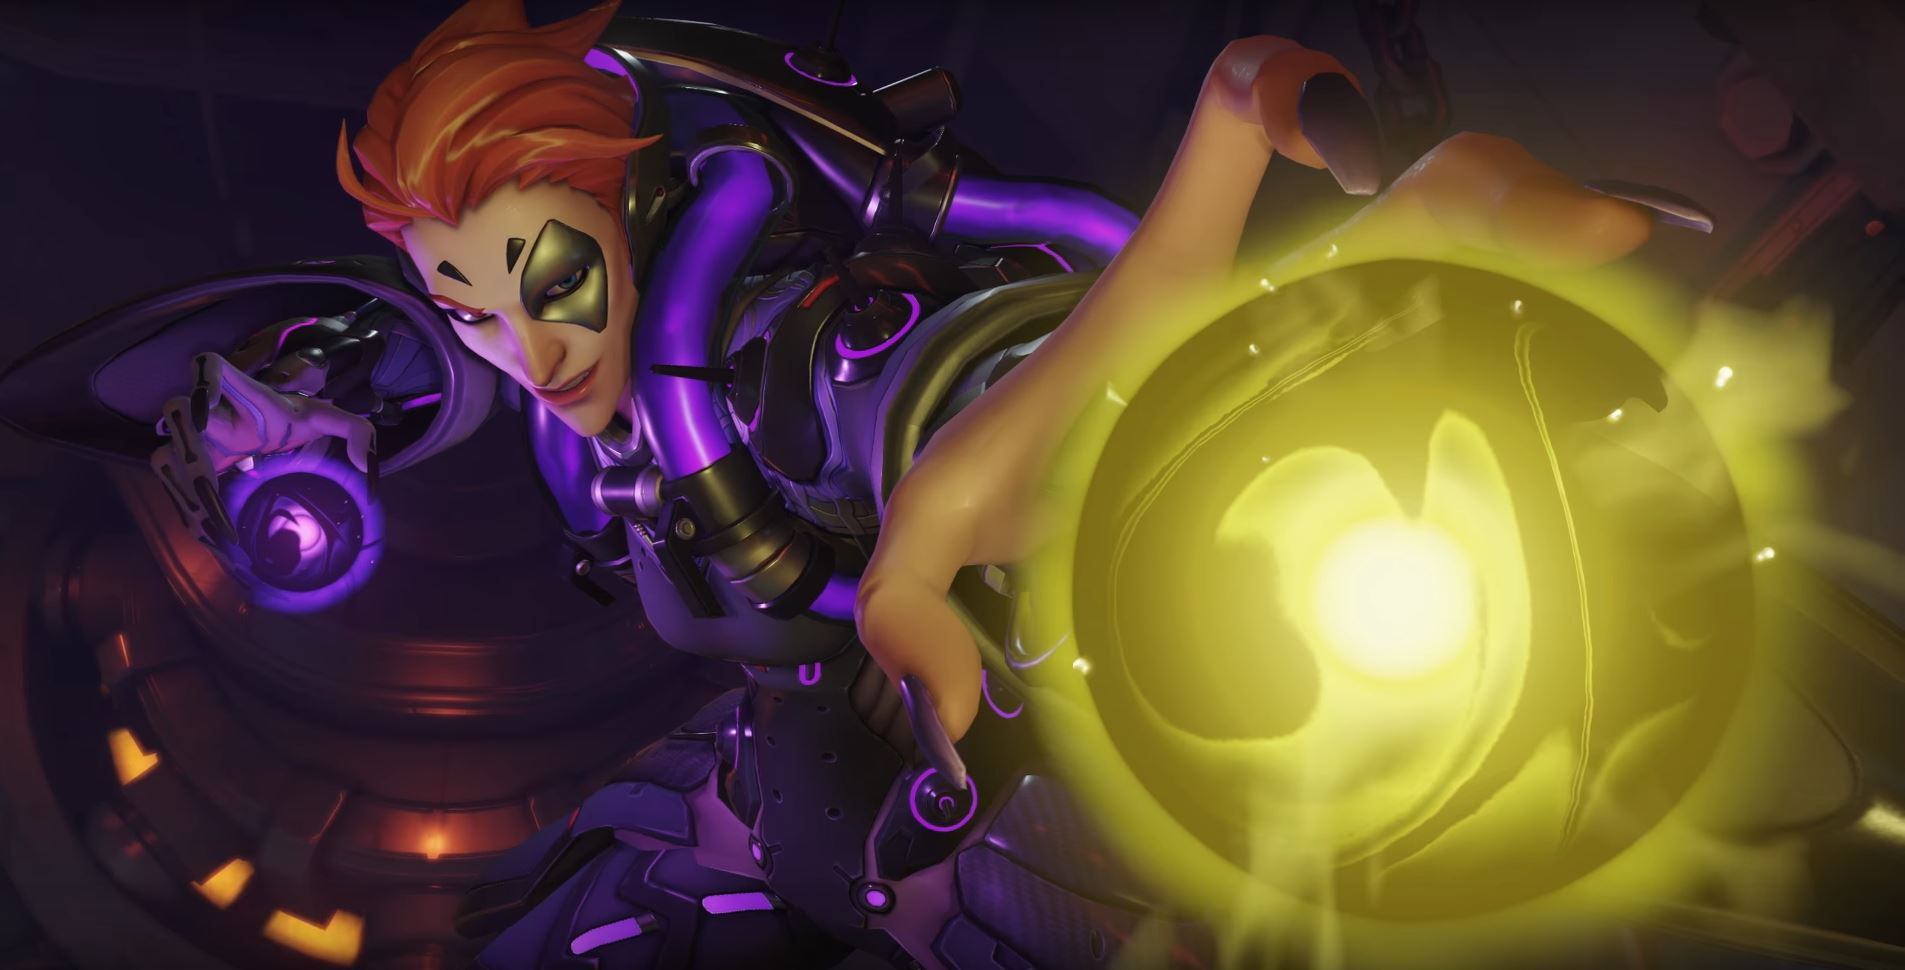 BlizzCon 2017: Moira is the Newest Hero Coming to Overwatch